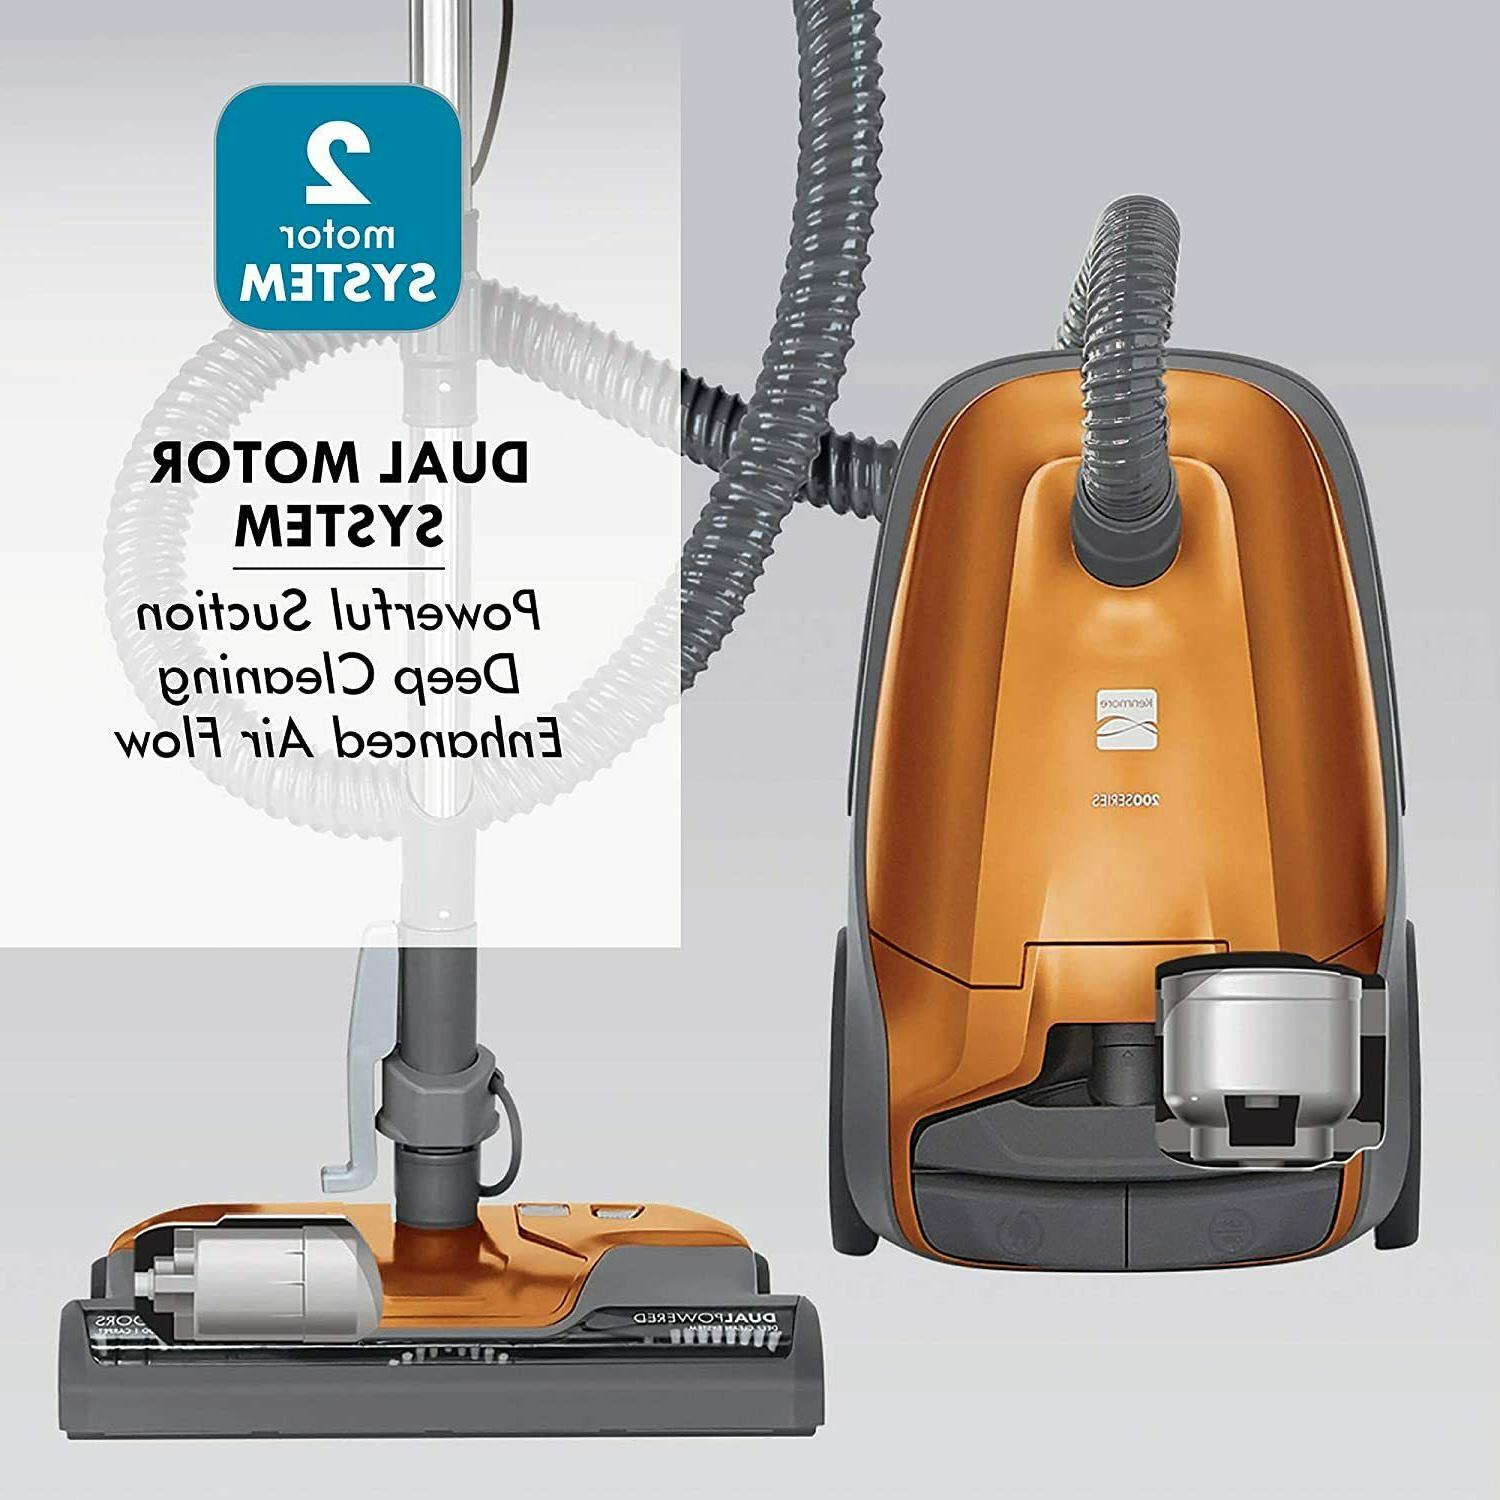 new 81214 200 series bagged canister vacuum